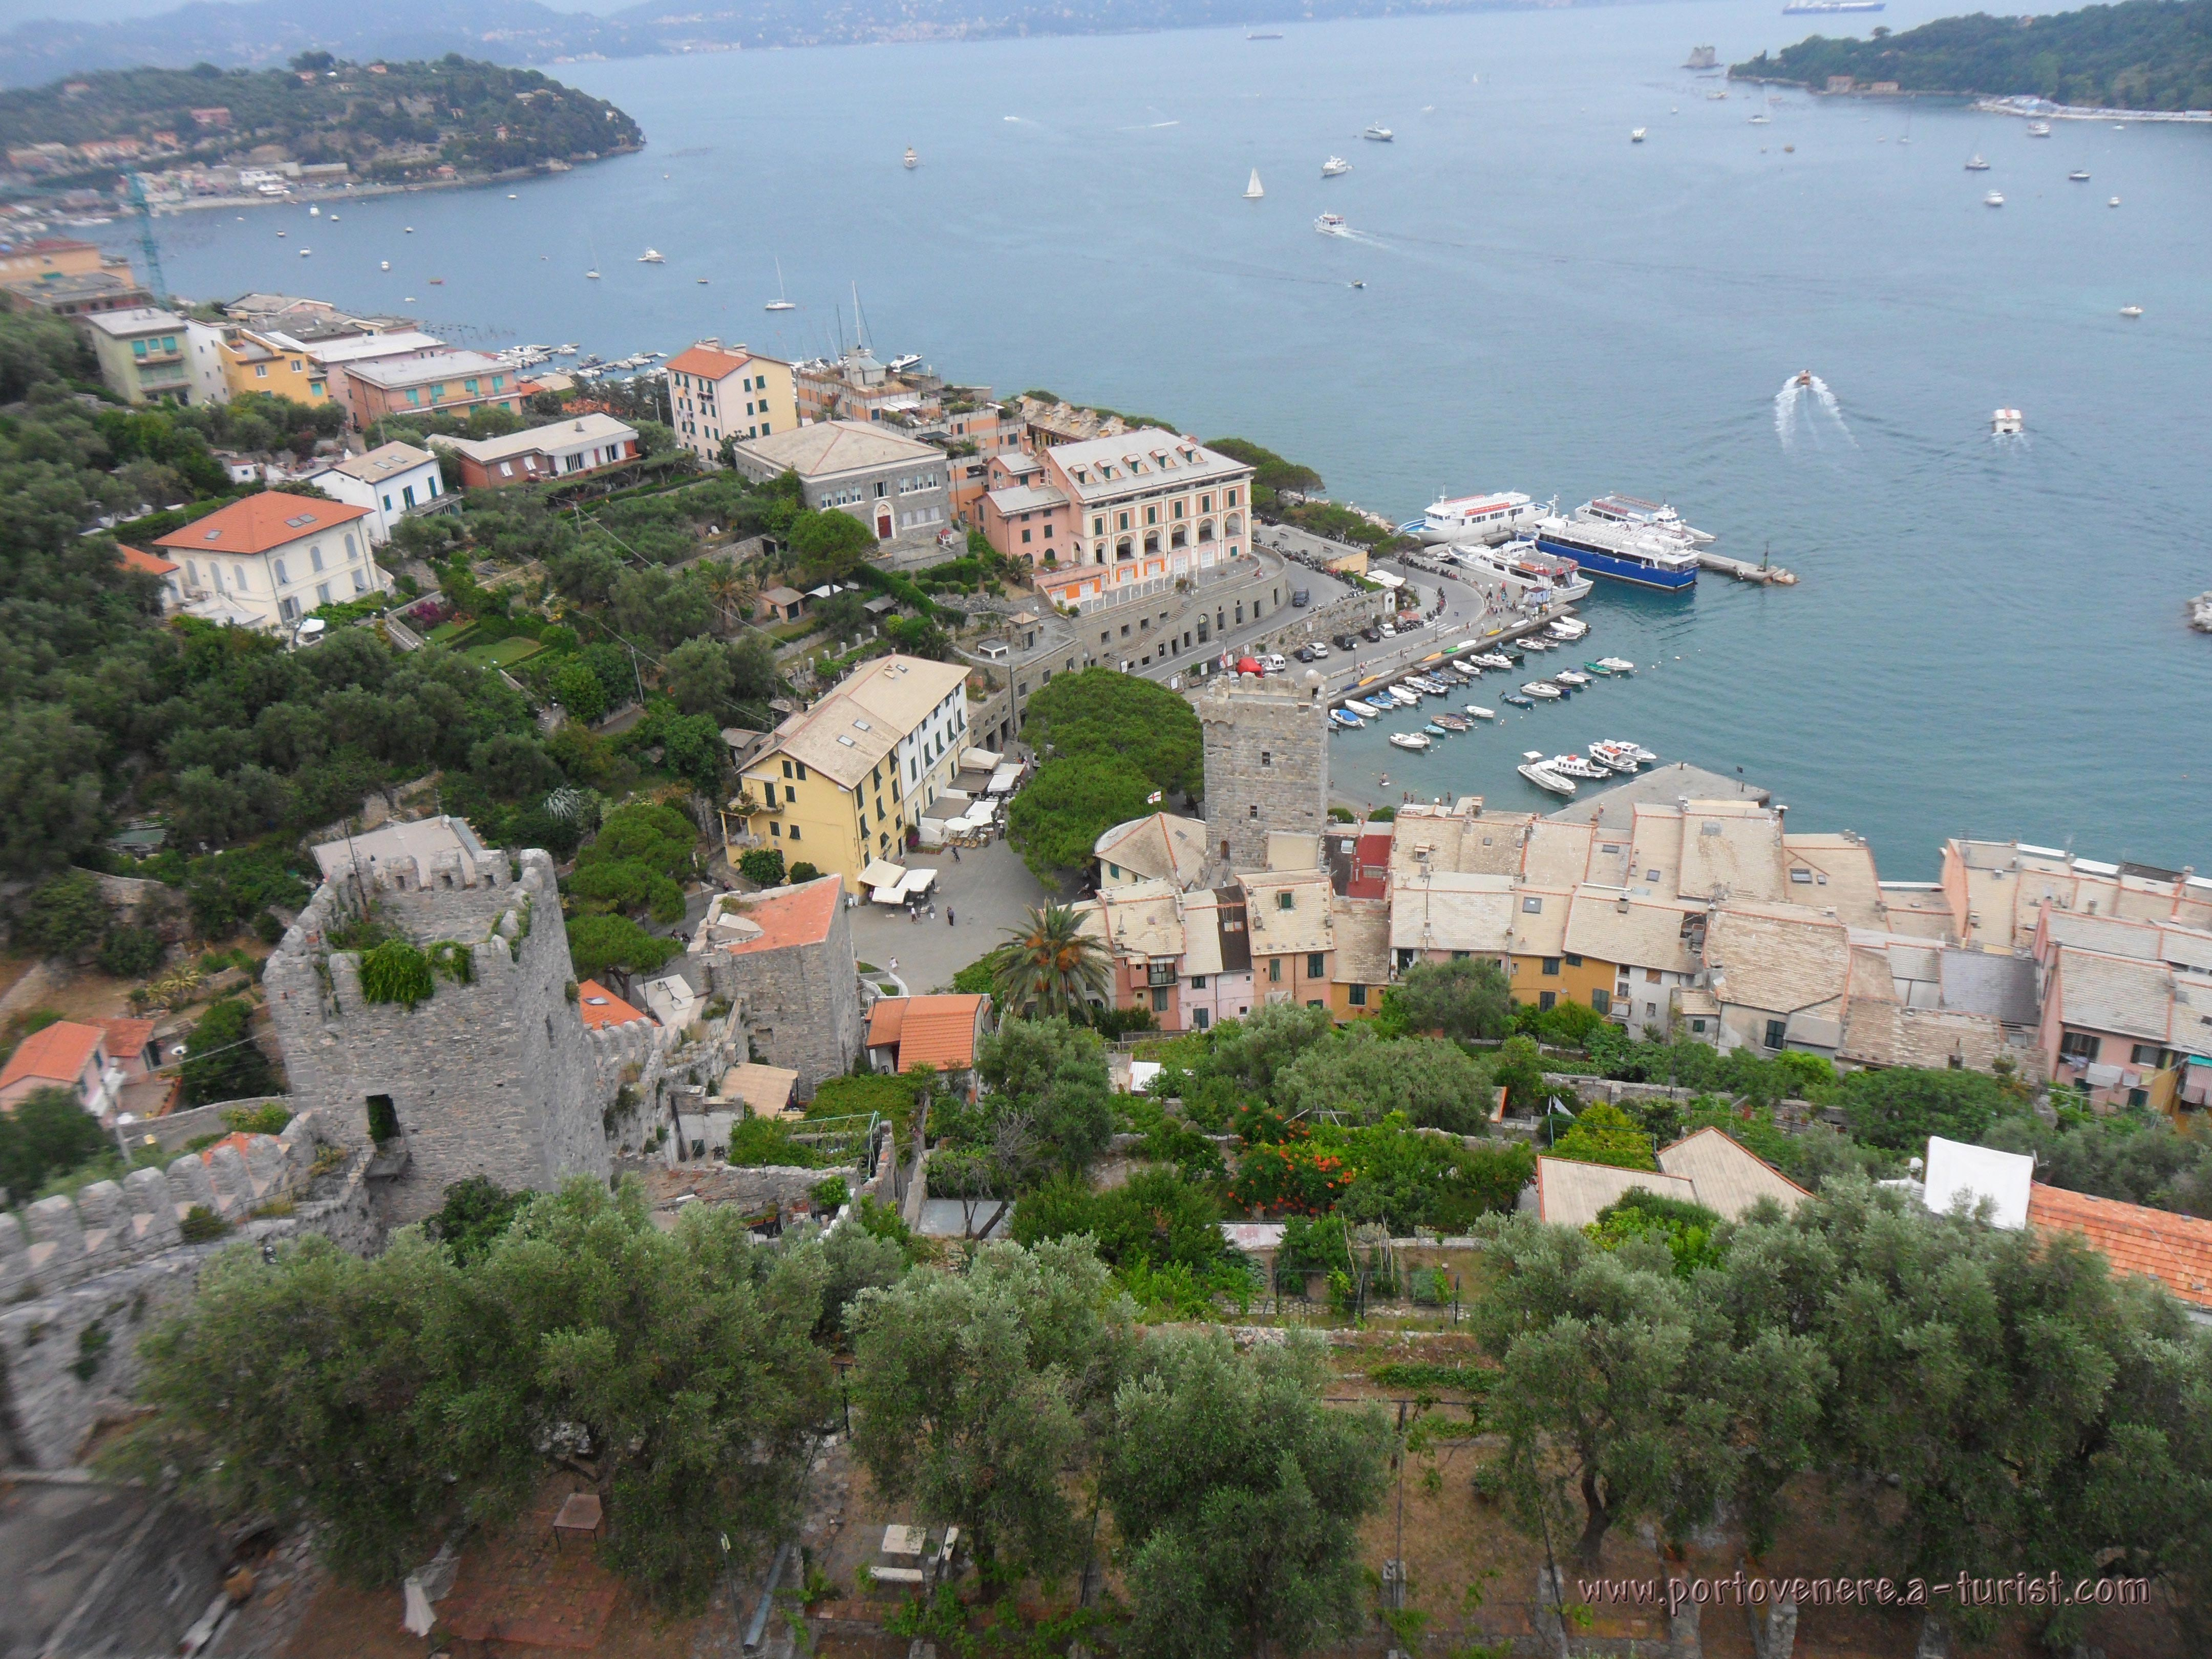 Portovenere - Panoramic view from the Castle Doria<br>4320x3240, 1.91 MB